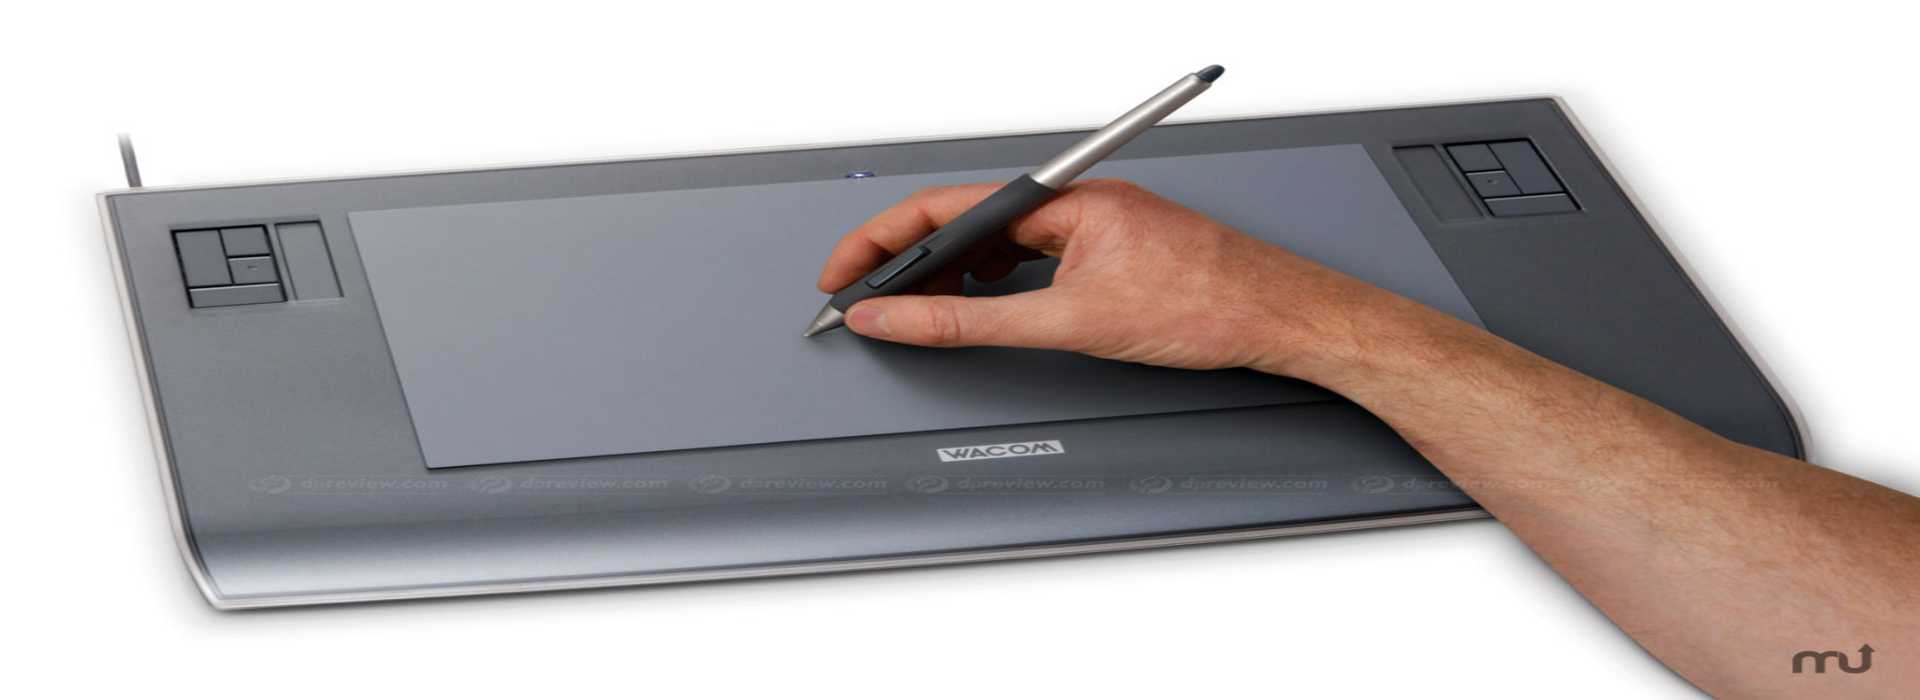 Wacom customer care number malaysia toll free number